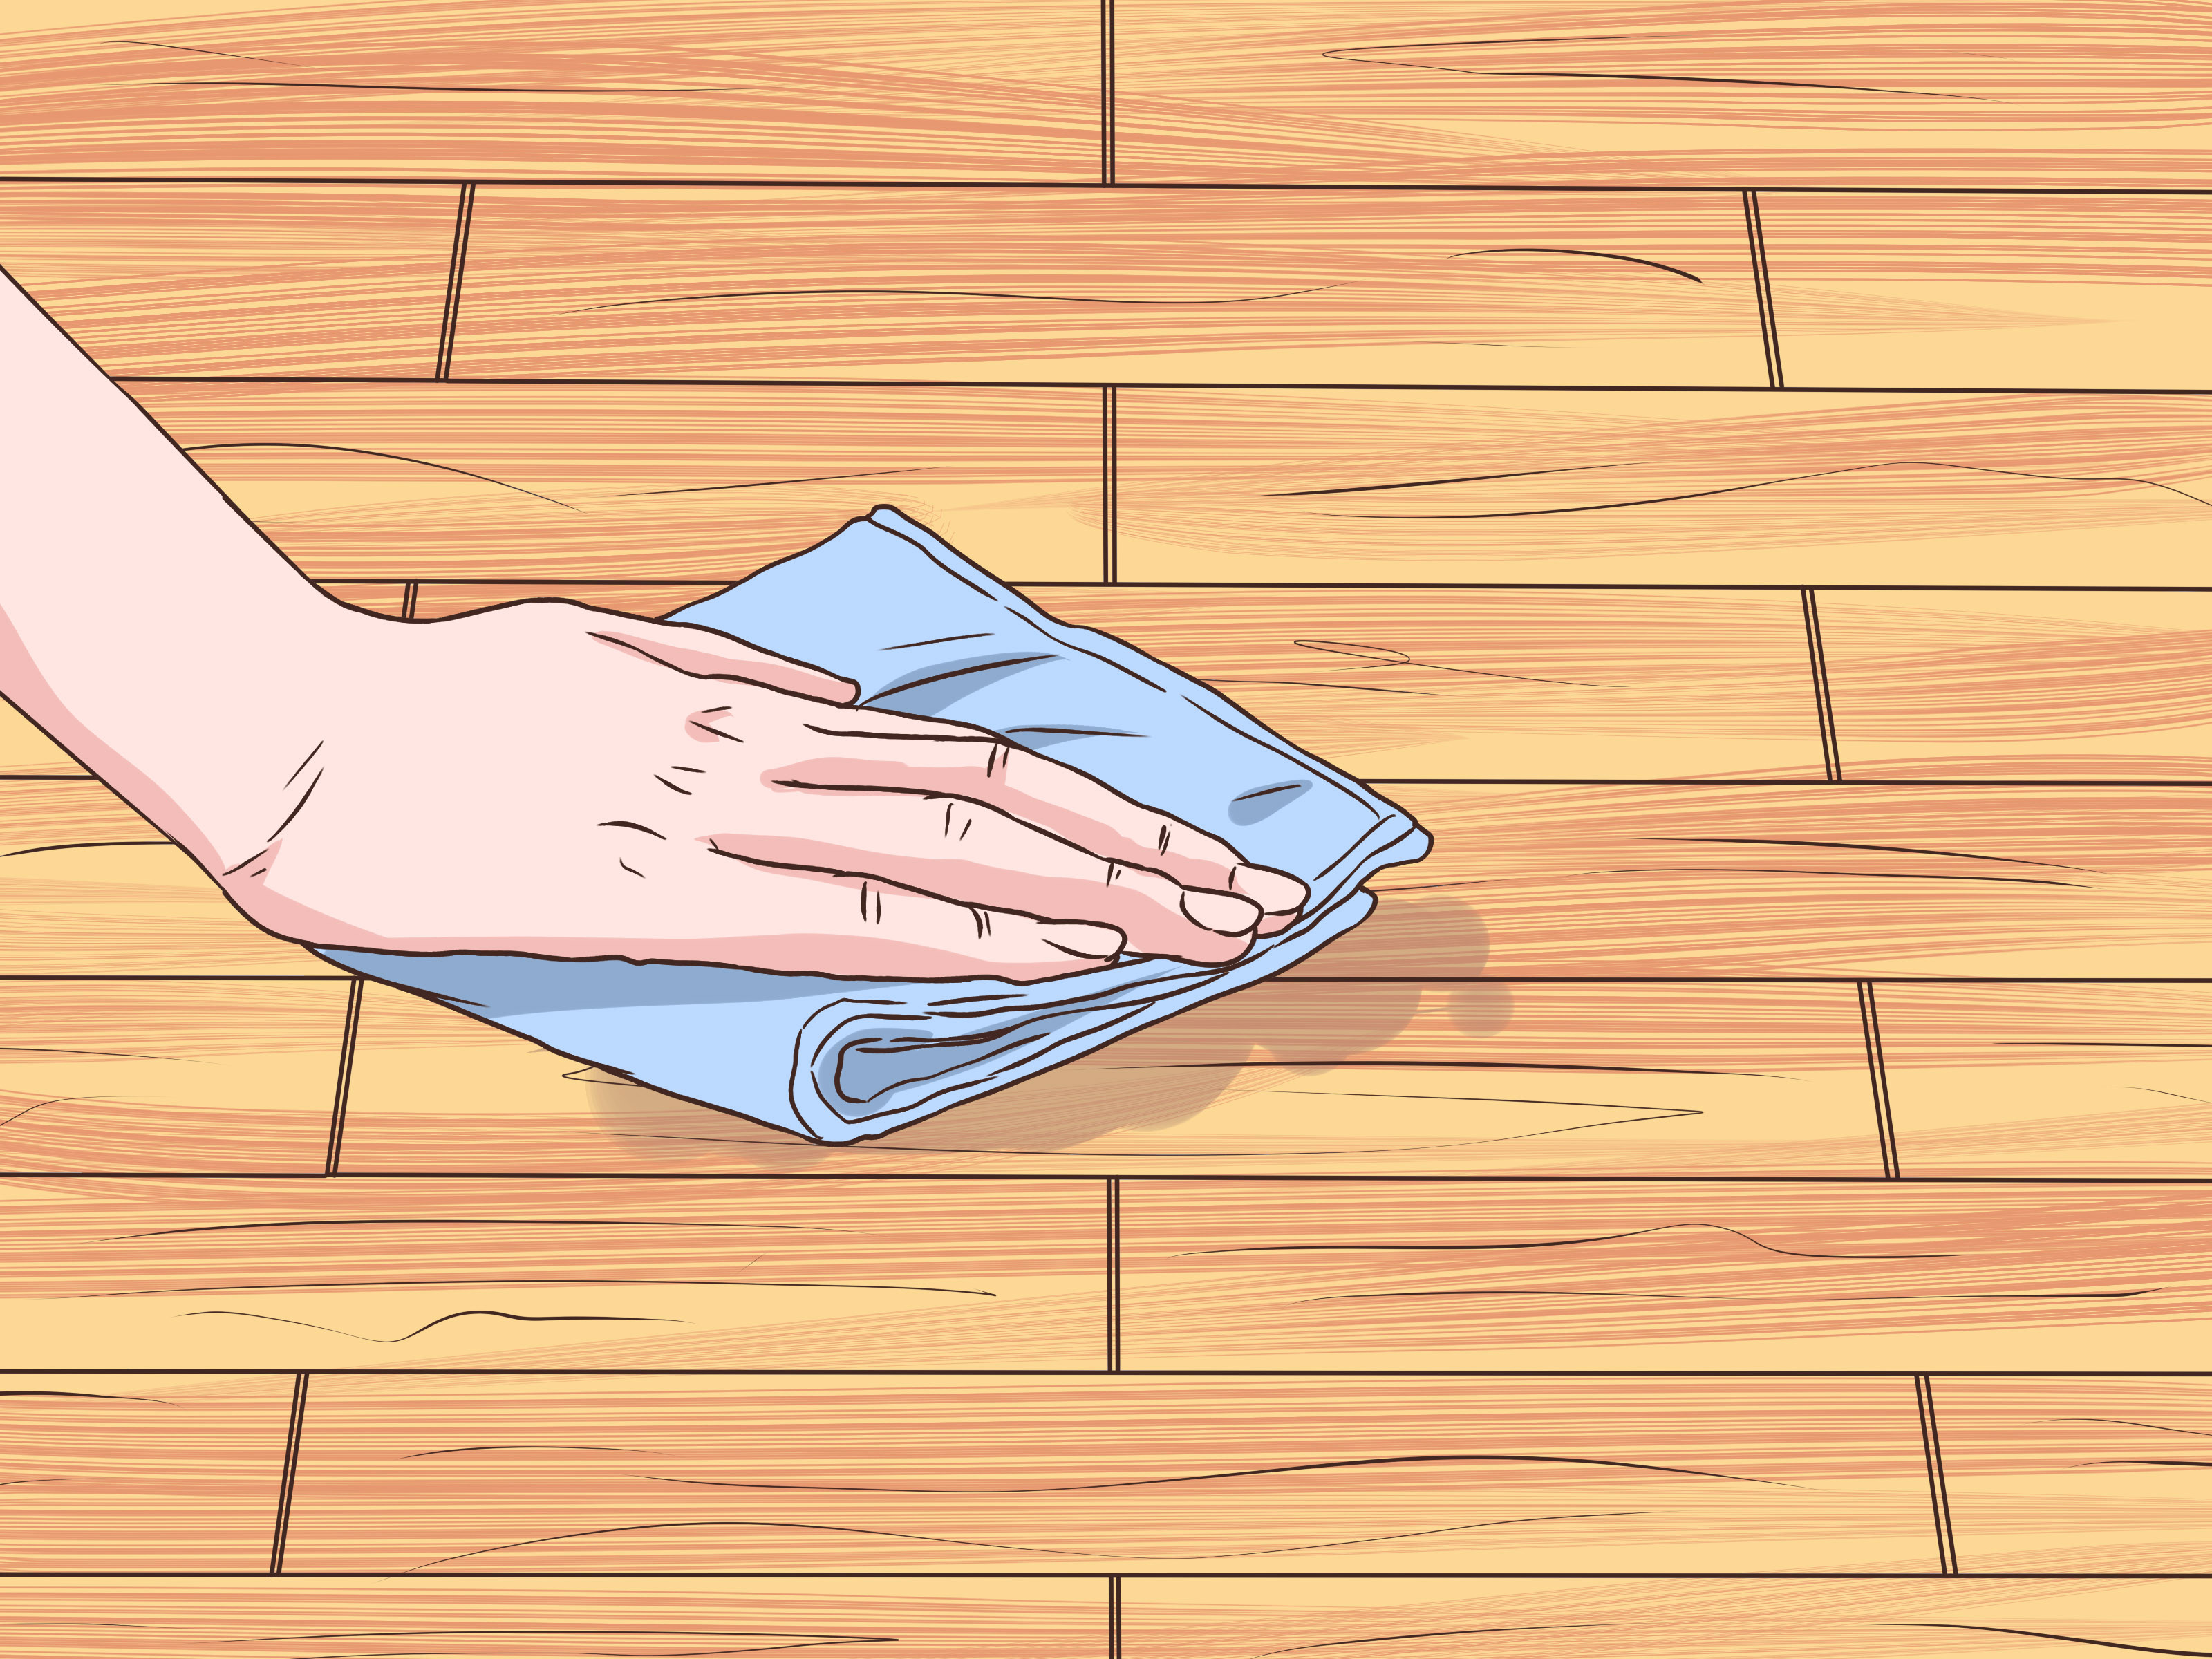 hardwood floor cleaning tips of how to clean sticky hardwood floors 9 steps with pictures with clean sticky hardwood floors step 9